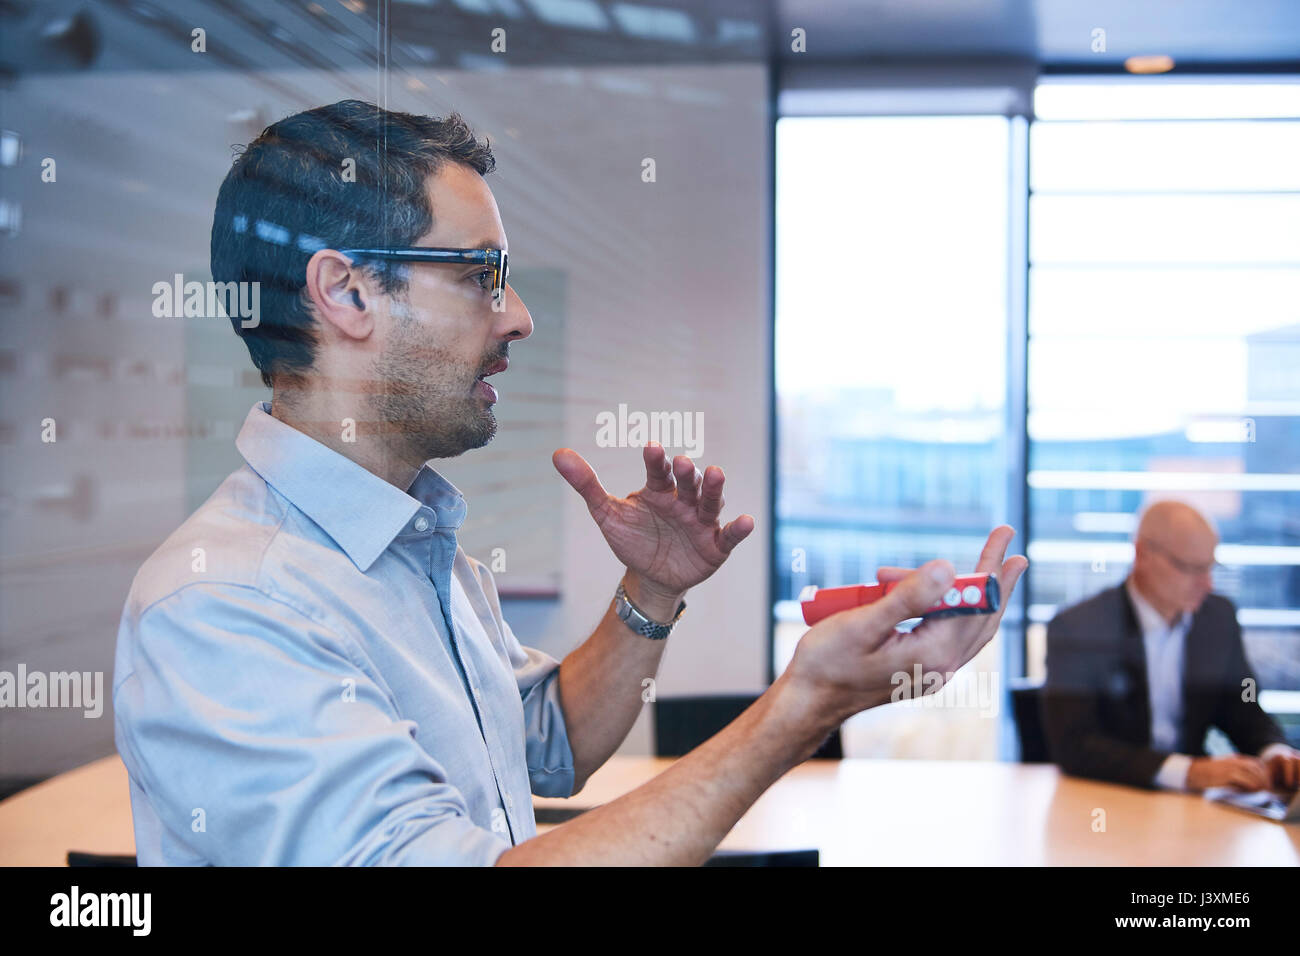 Window view of businessman making presentation in office - Stock Image